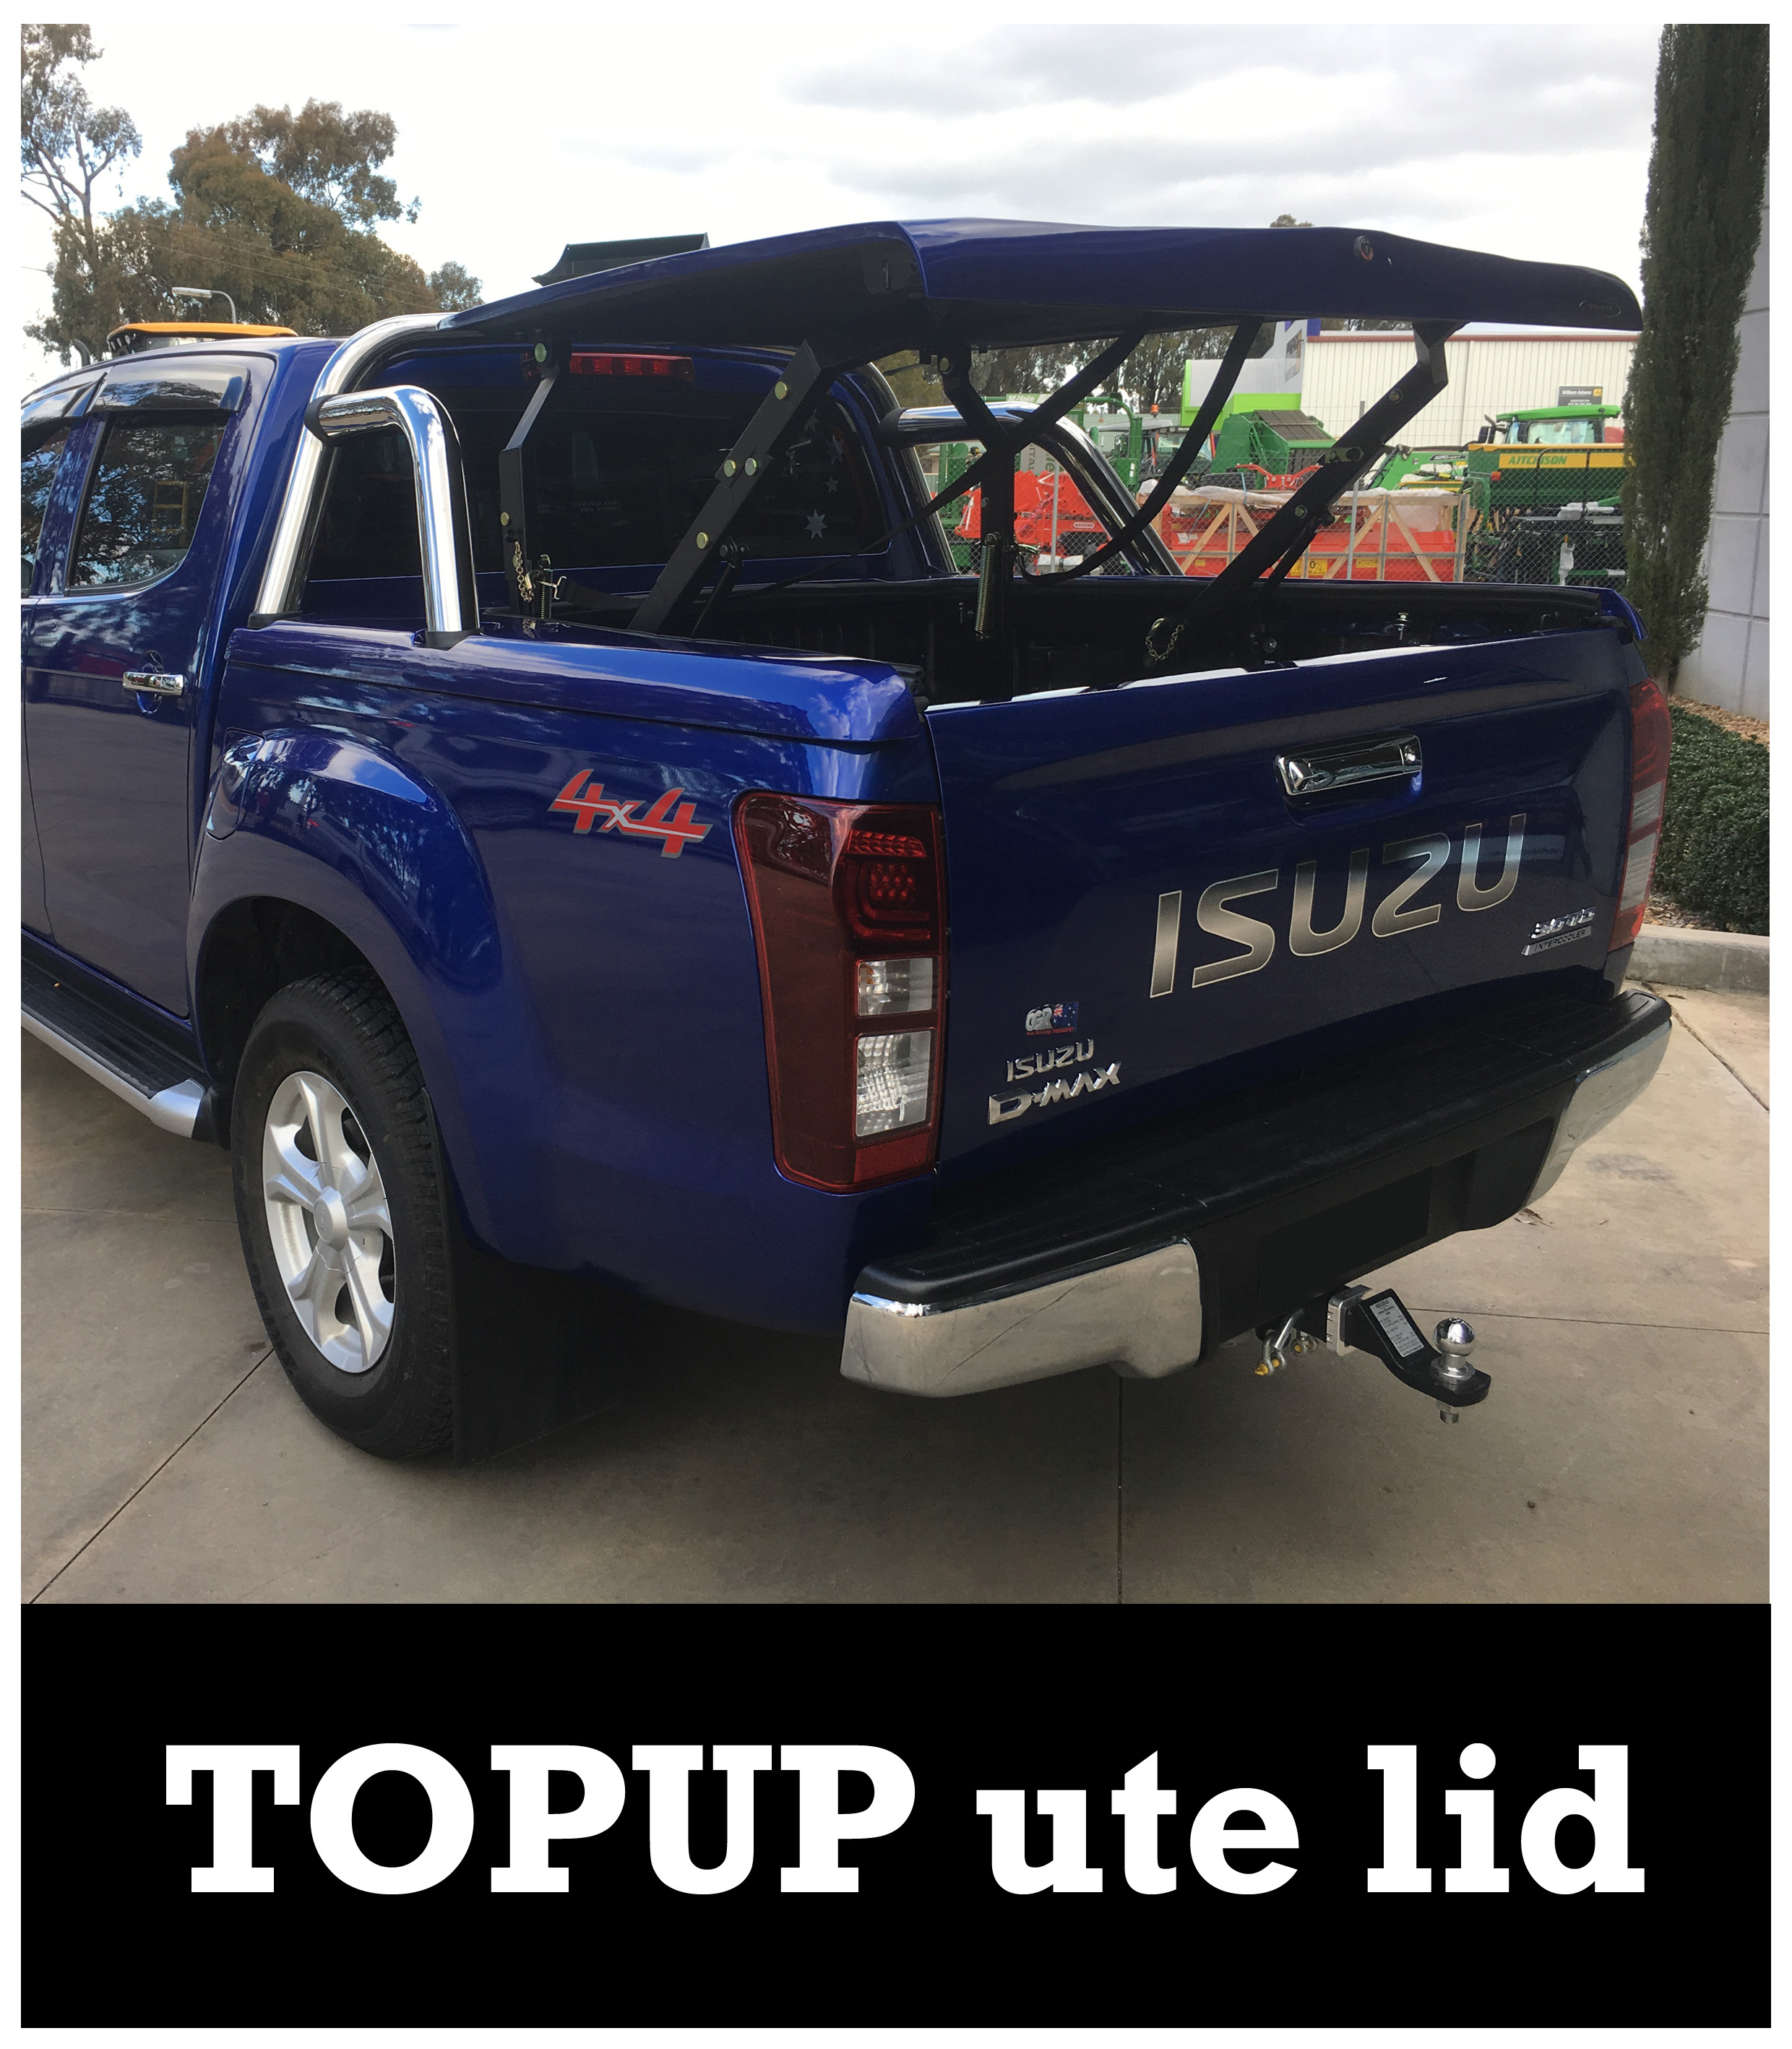 WEbsite_Dmax_TopUp_Thumbnail_edited-1.jpg